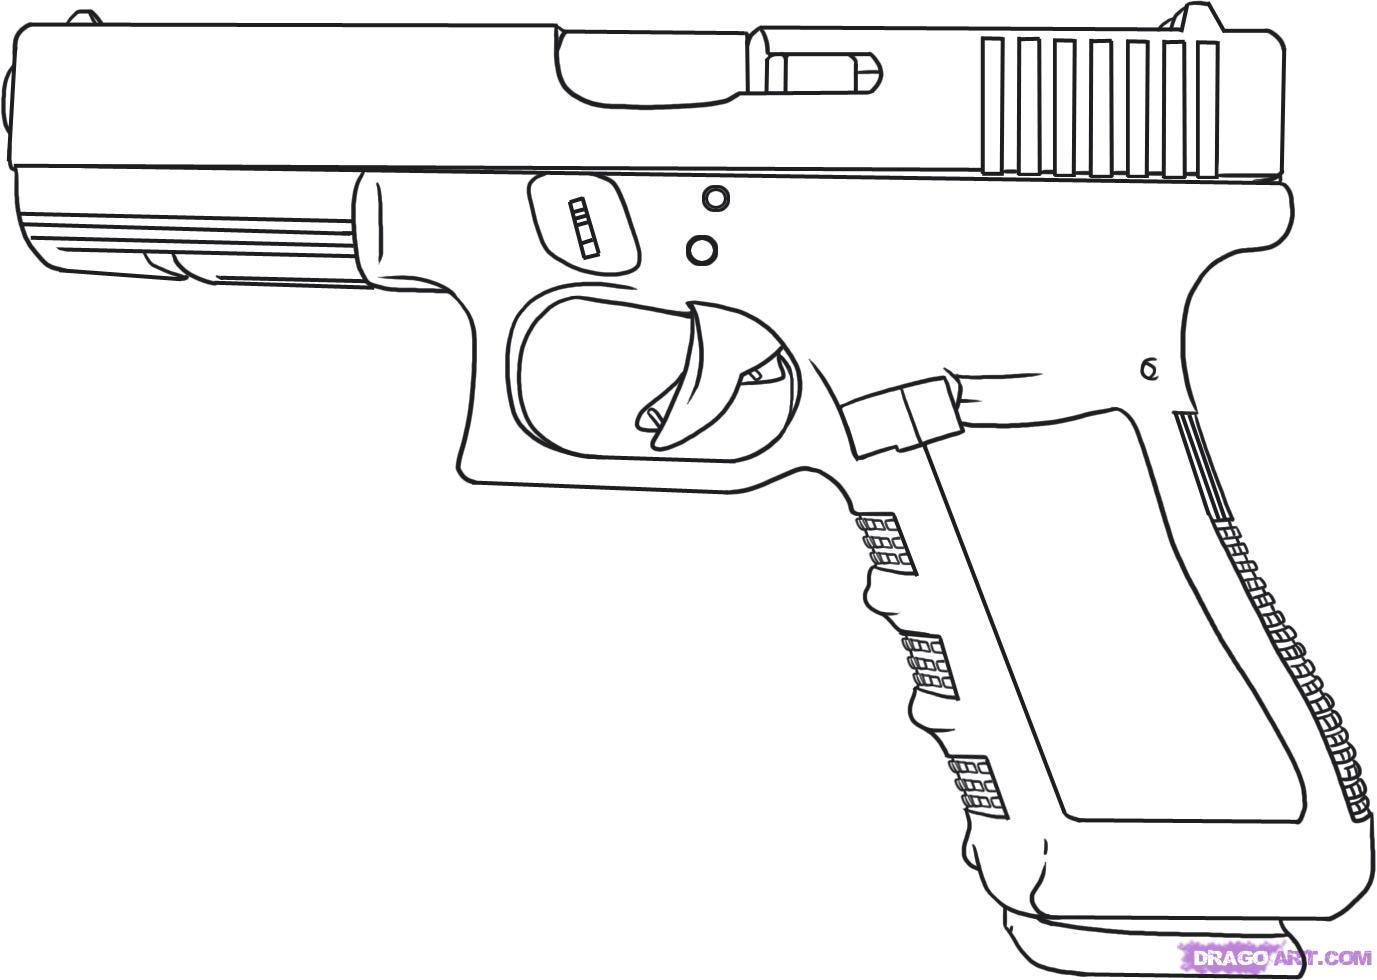 Drawn pistol hand holding To How A Weapons FREE